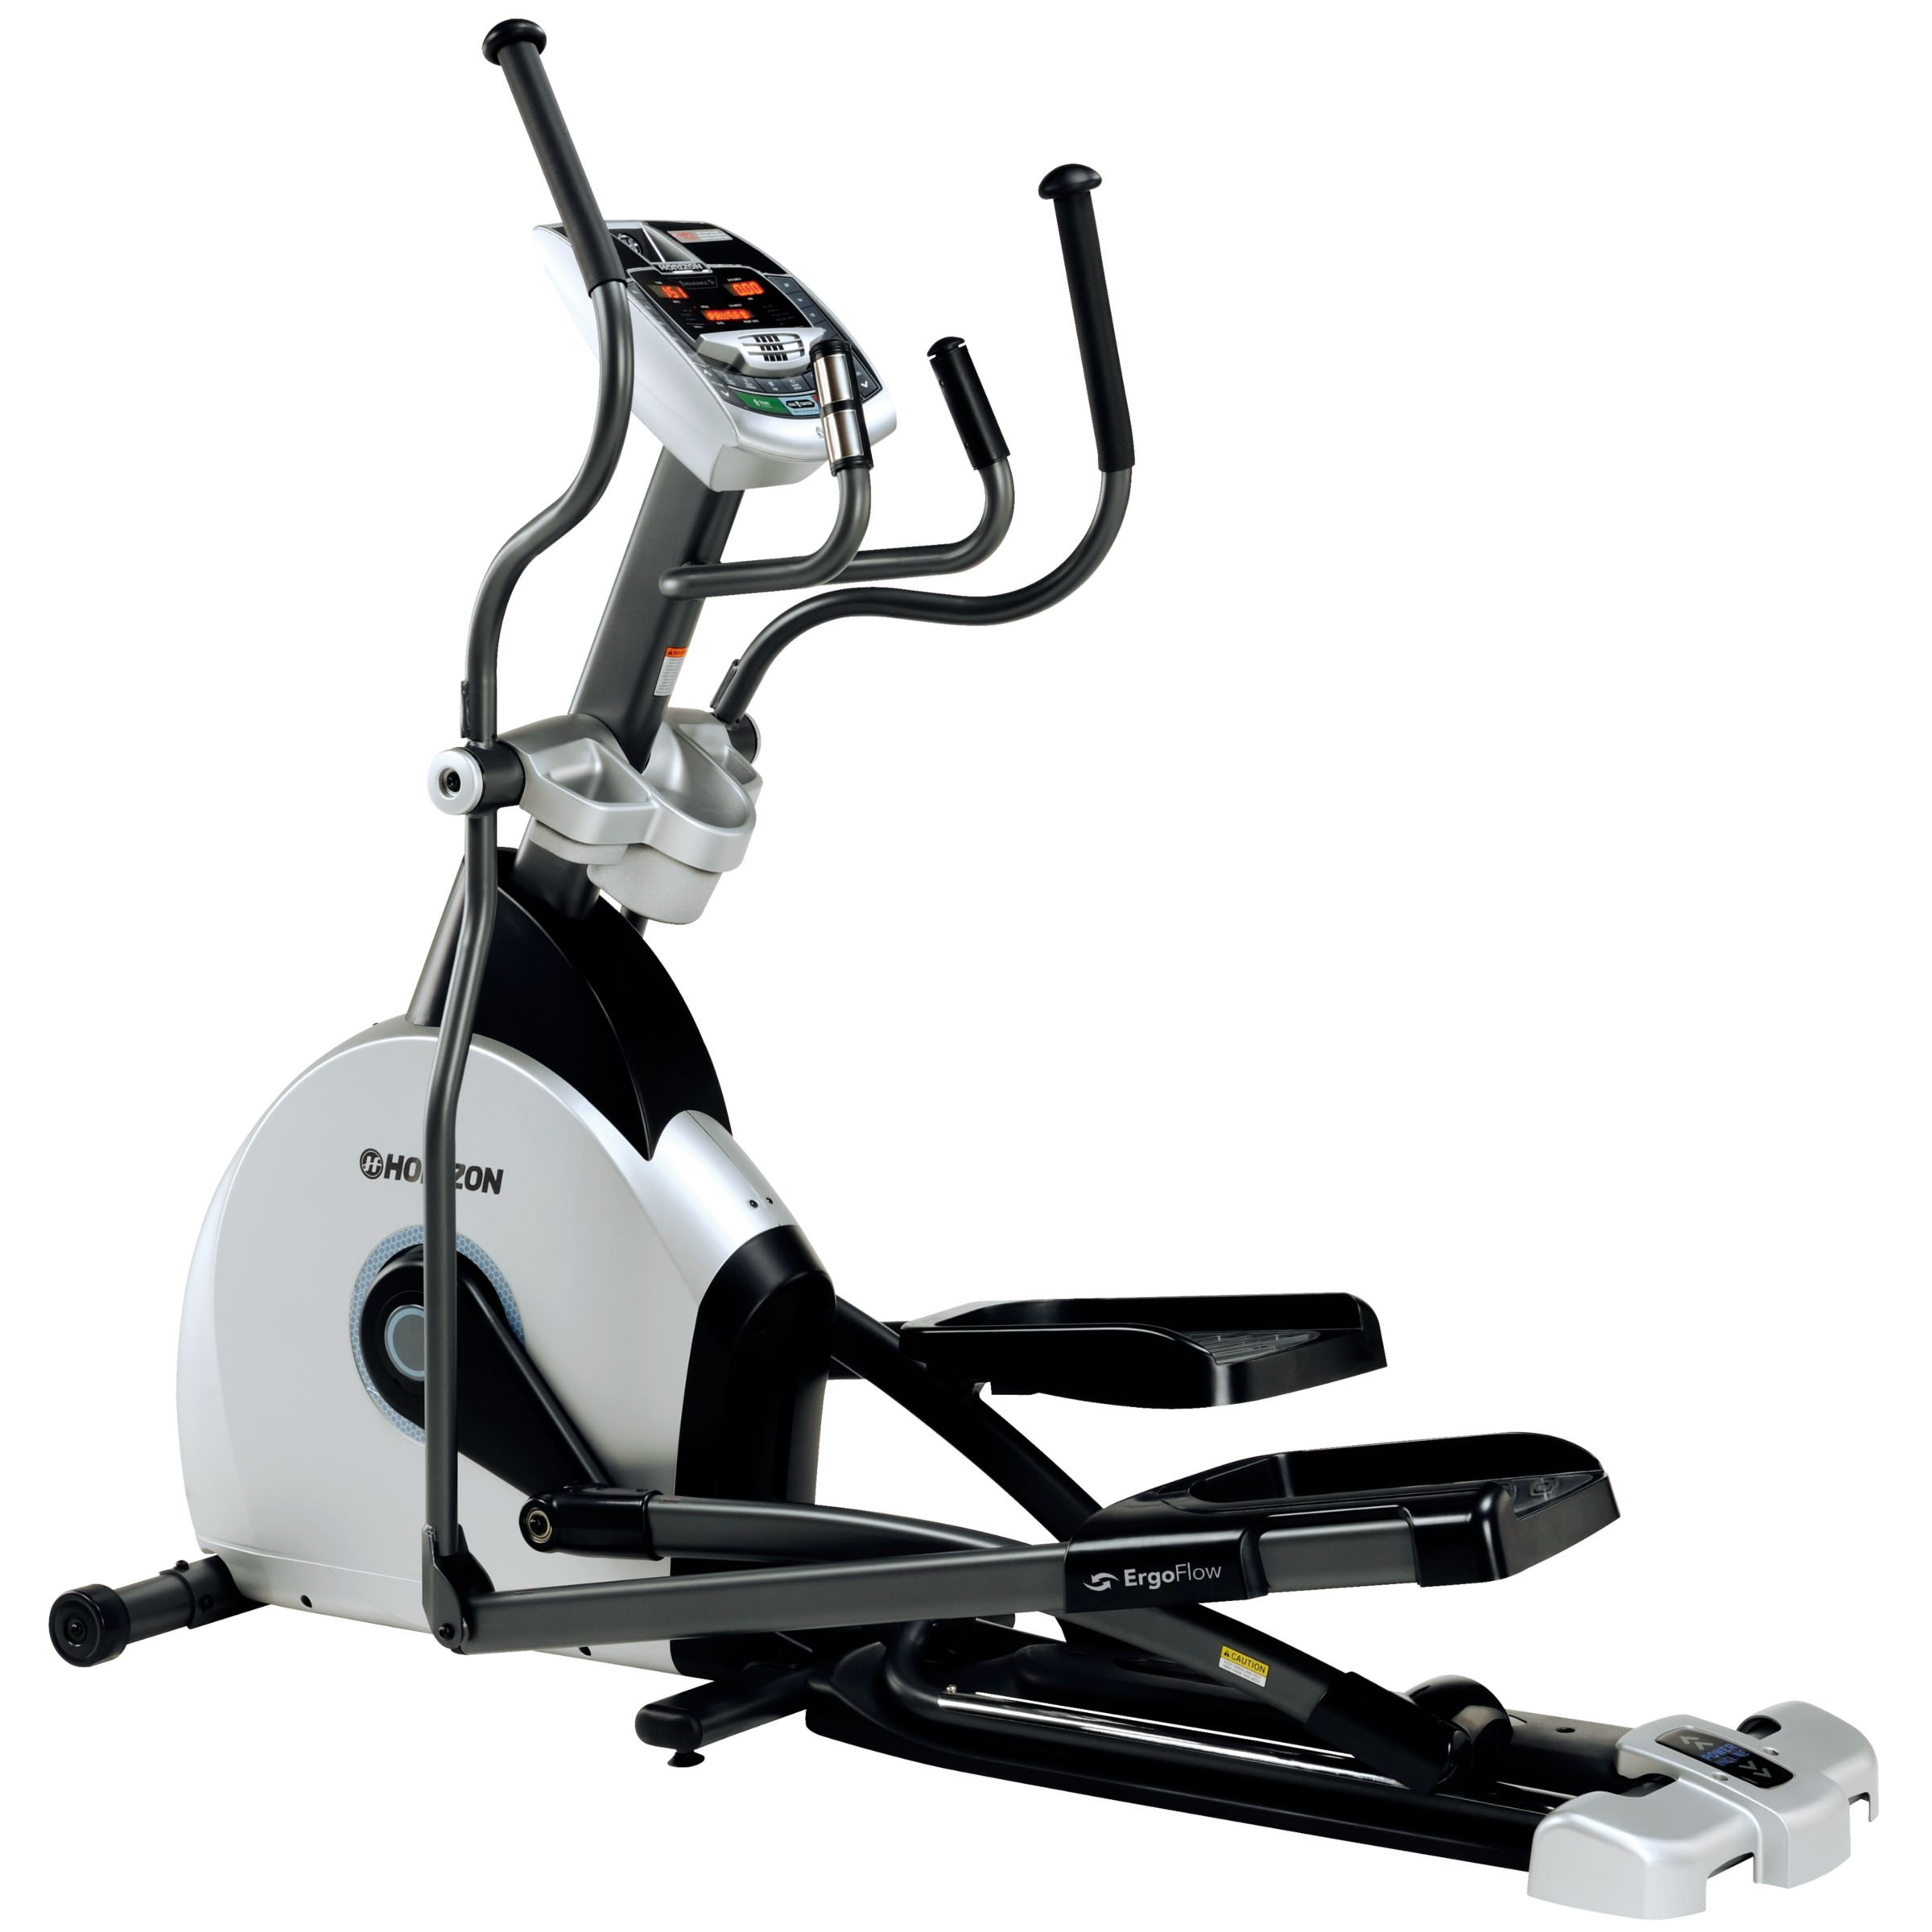 Horizon Elliptical Trainer: Horizon Traverse 6 Elliptical Cross Trainer